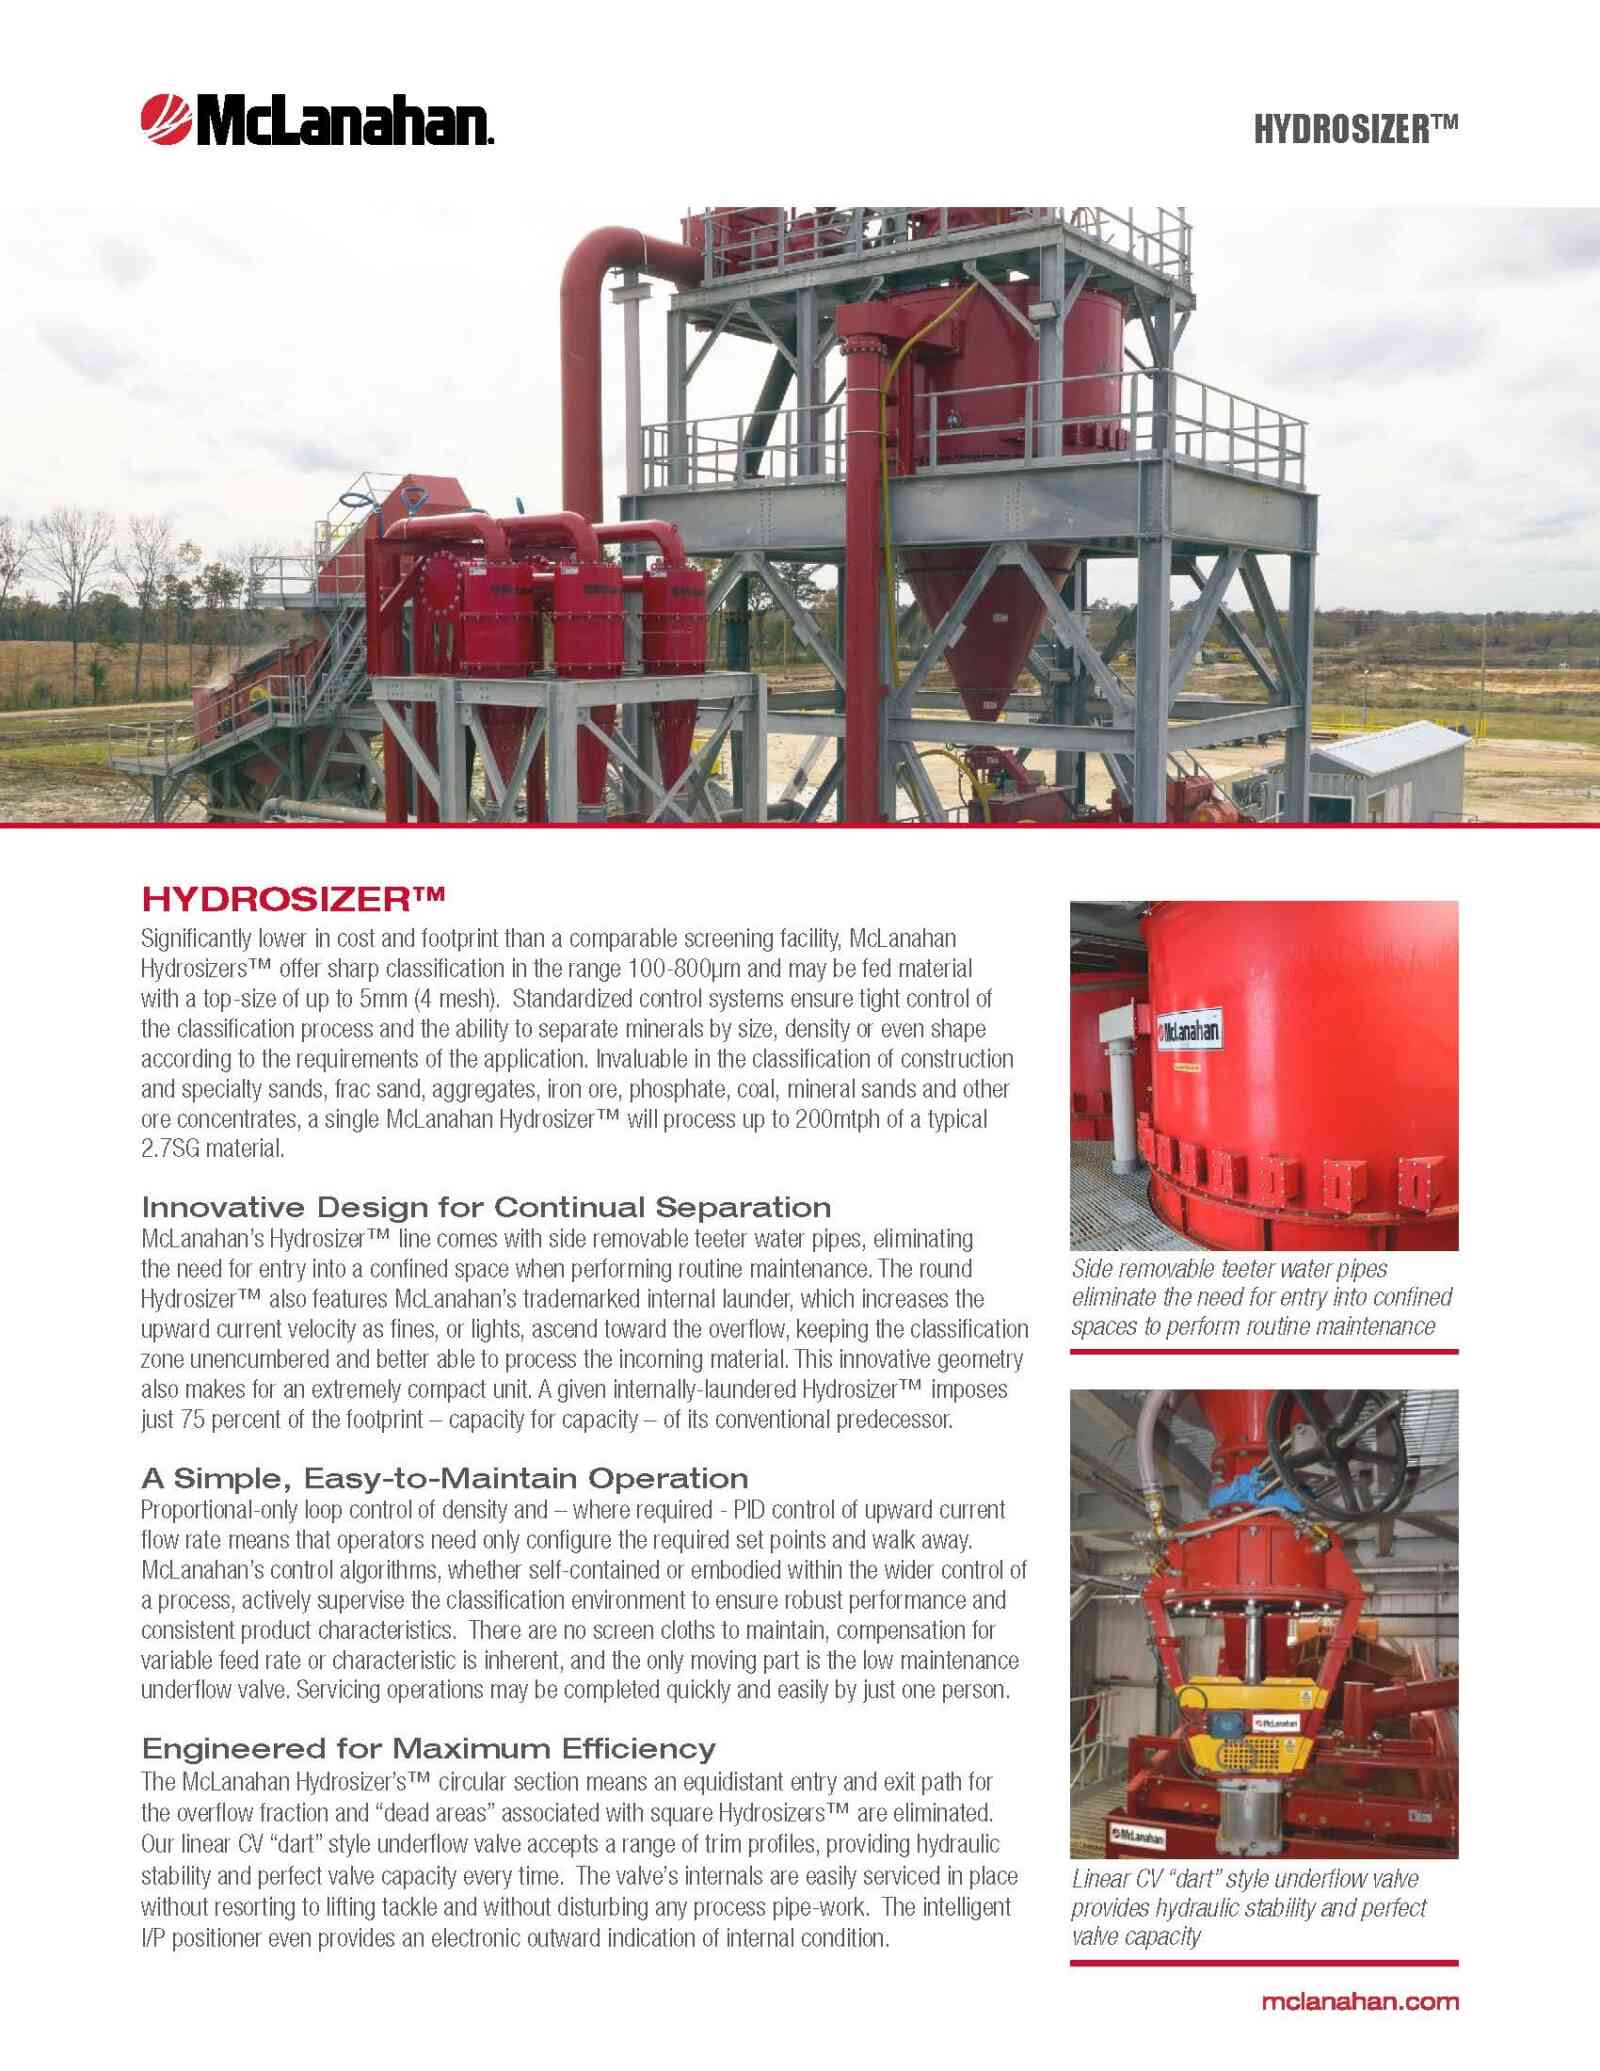 Hydrosizer Brochure Image Page 1